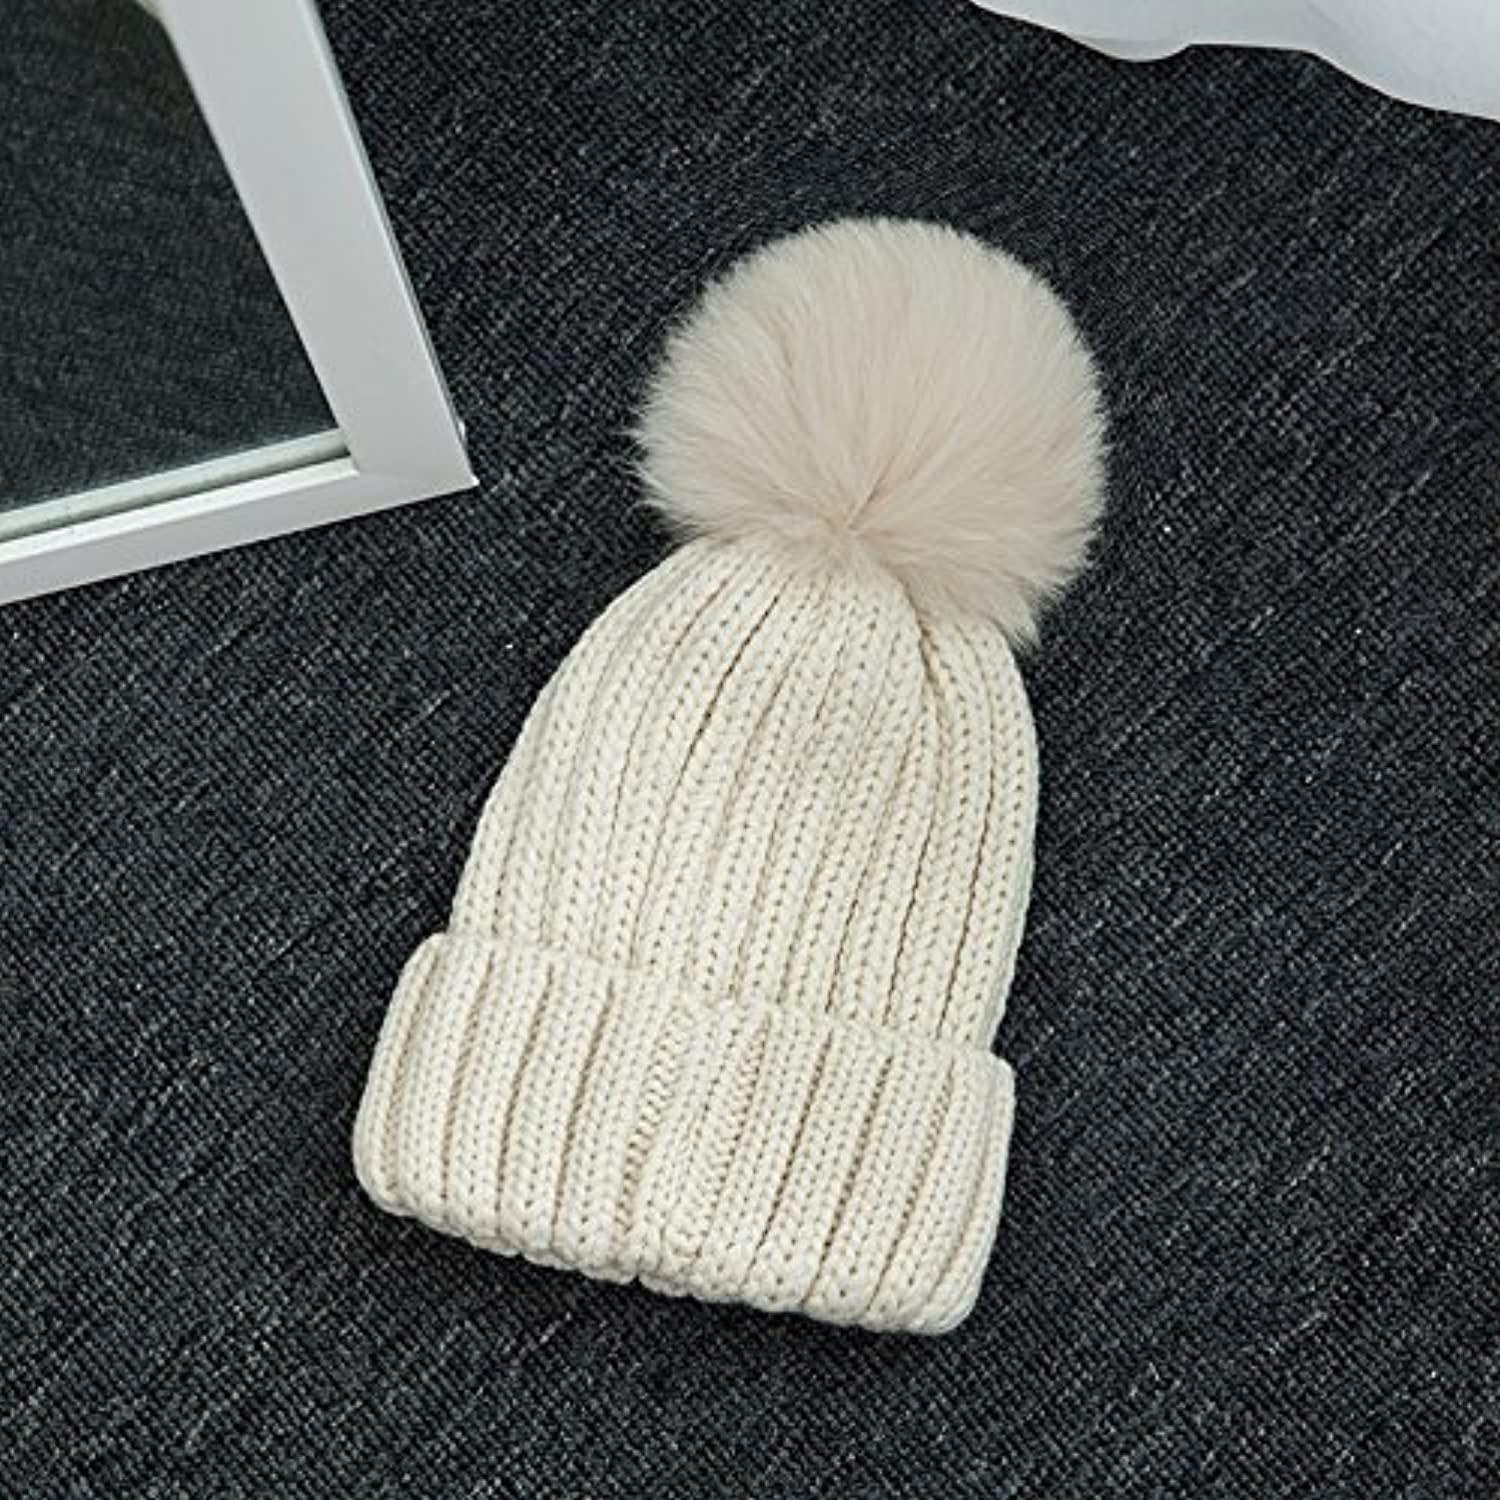 Syksdy Autumn and winter lady fashion knitted cap thickening warm wool cap